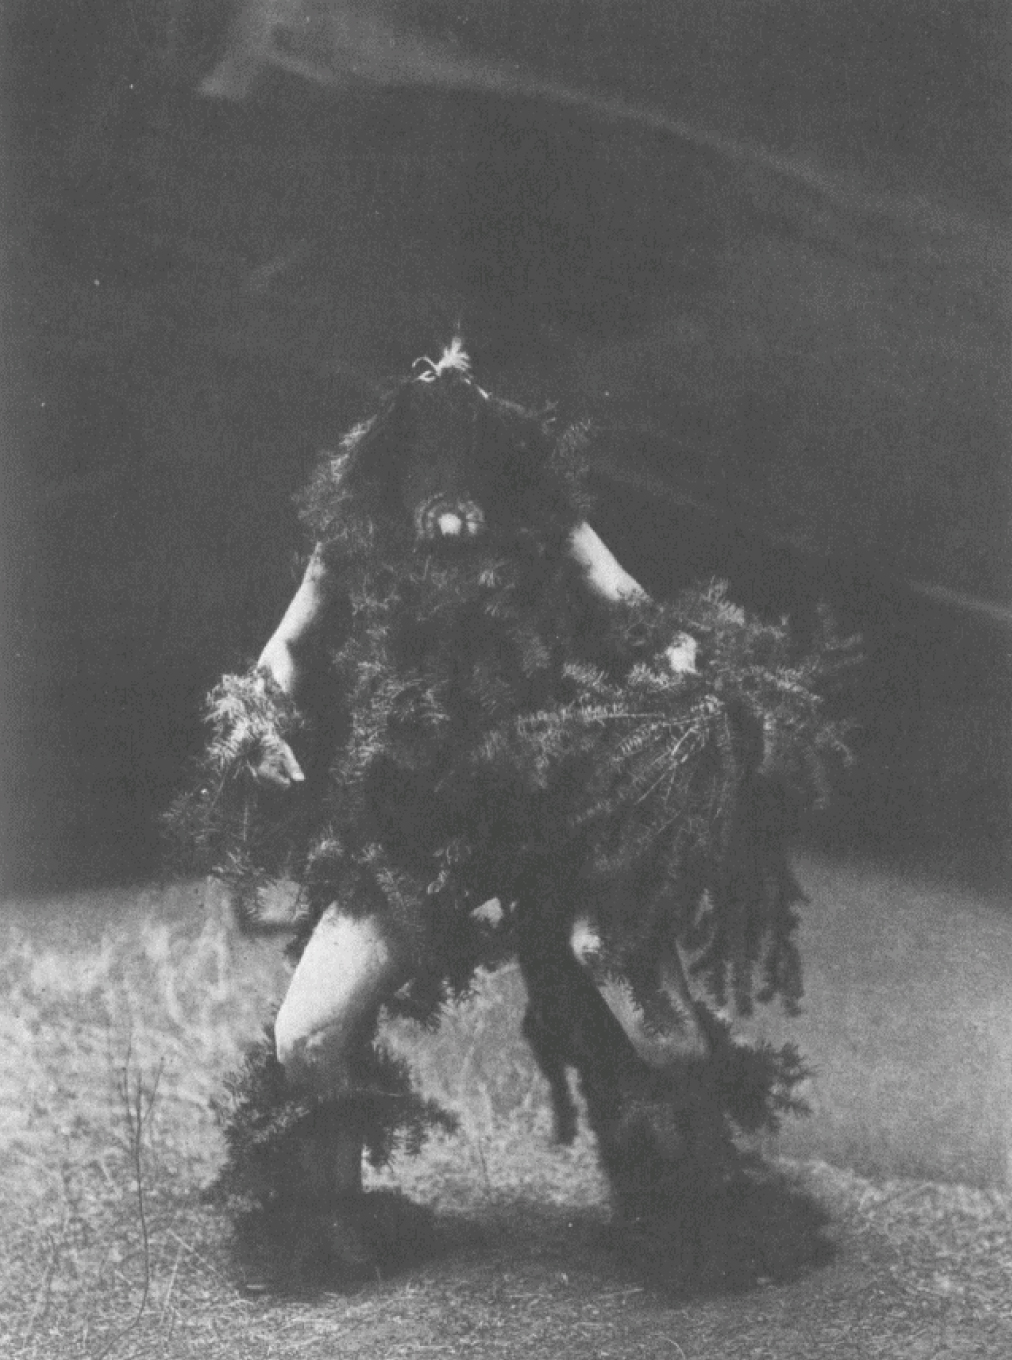 8. Tóneili - Navaho From Copyright Photograph 1904 by E.S. Curtis Tónen-l-, Water Sprinkler, is the Rain God of the Navaho. He it is who sends the rain, the hail, and the snow, and causes thunder and lightning. The personator of this god in the ceremonies